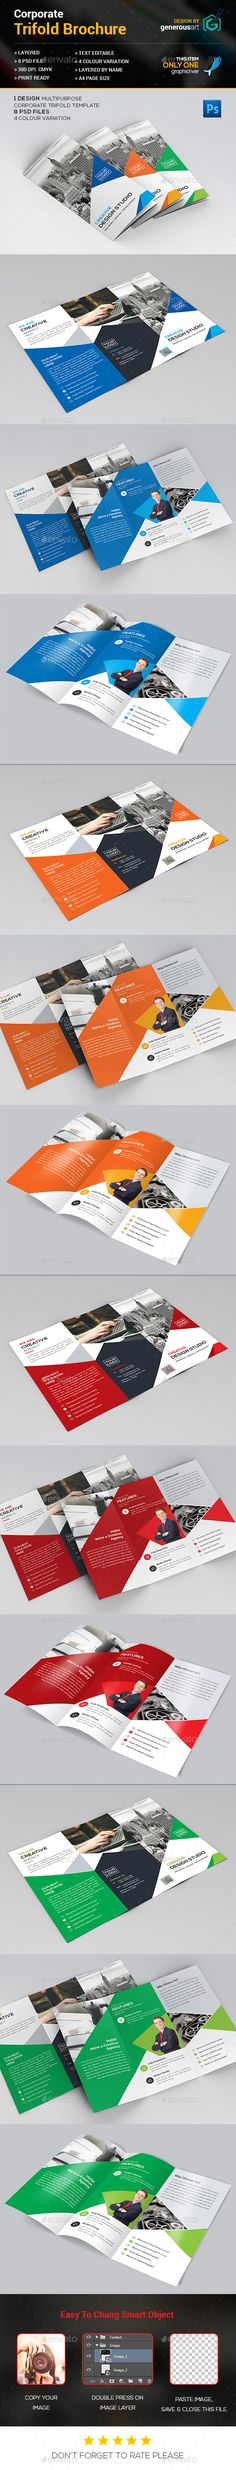 Clean Red Trifold Brochure Template LAYOUT Brochure - psd brochure design inspiration